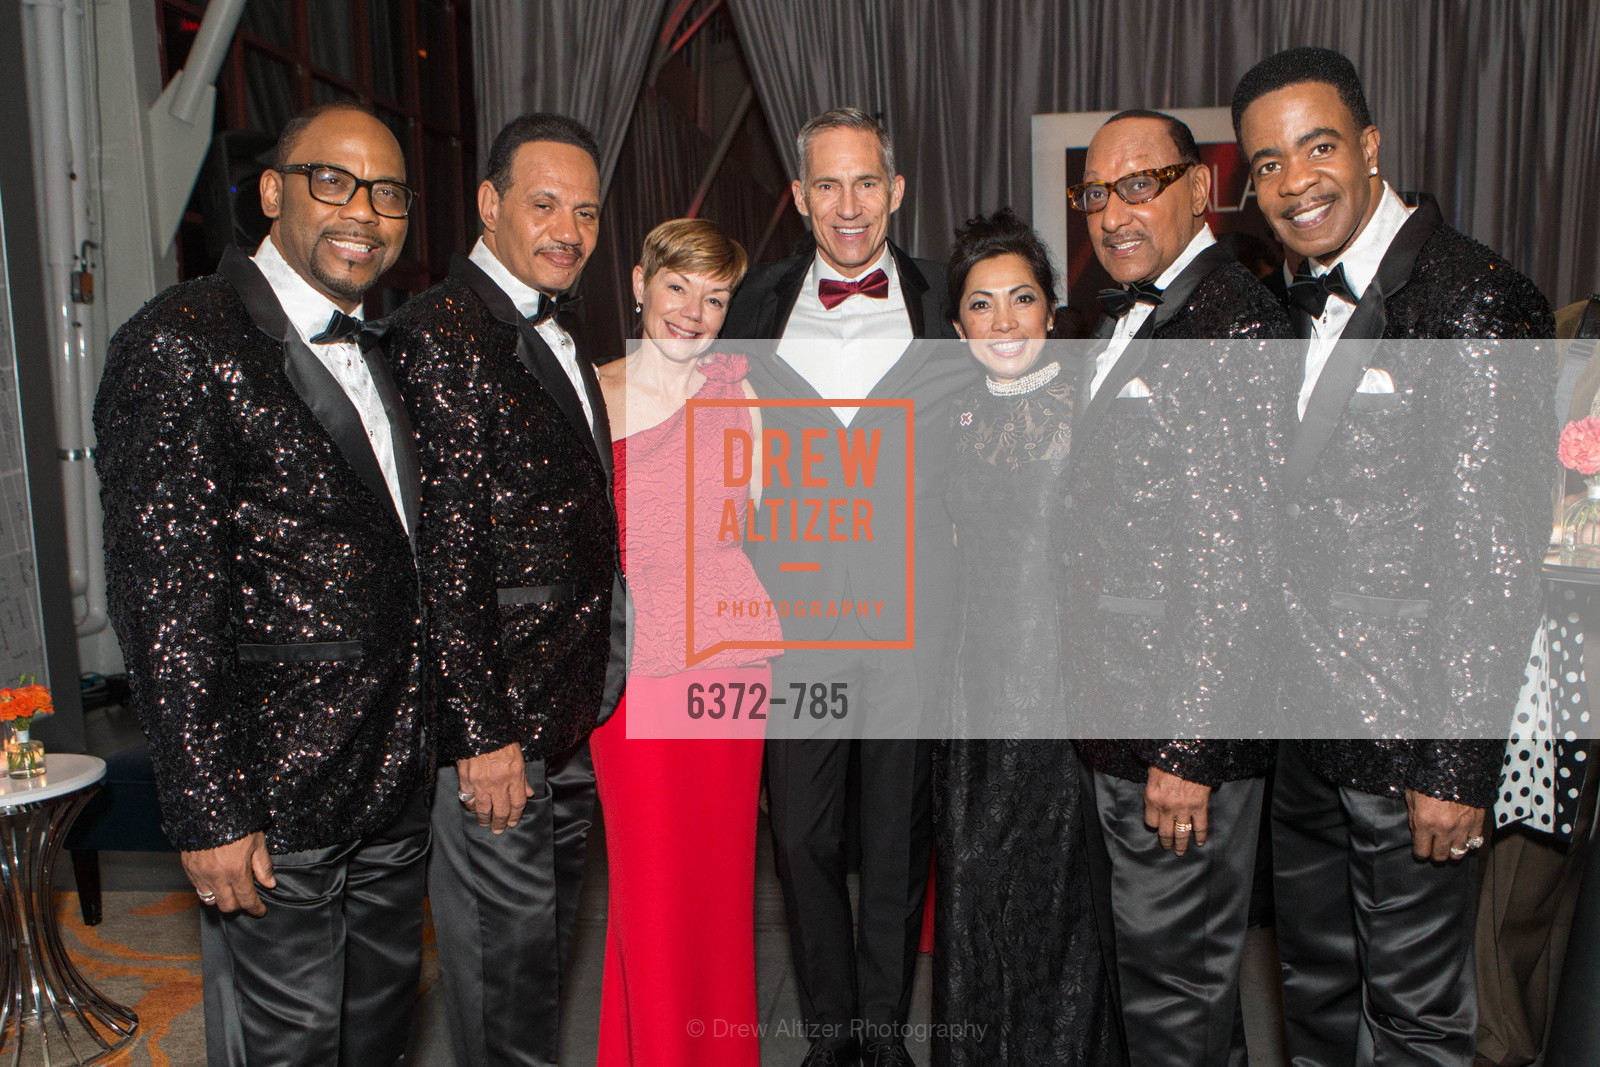 Lawrence Payton, Ronnie McNair, Paula Downey, Mark Cloutier, Quinn Tran, Duke Fakir, Spike Bonhart, 2015 RED CROSS Gala, US, April 12th, 2015,Drew Altizer, Drew Altizer Photography, full-service agency, private events, San Francisco photographer, photographer california